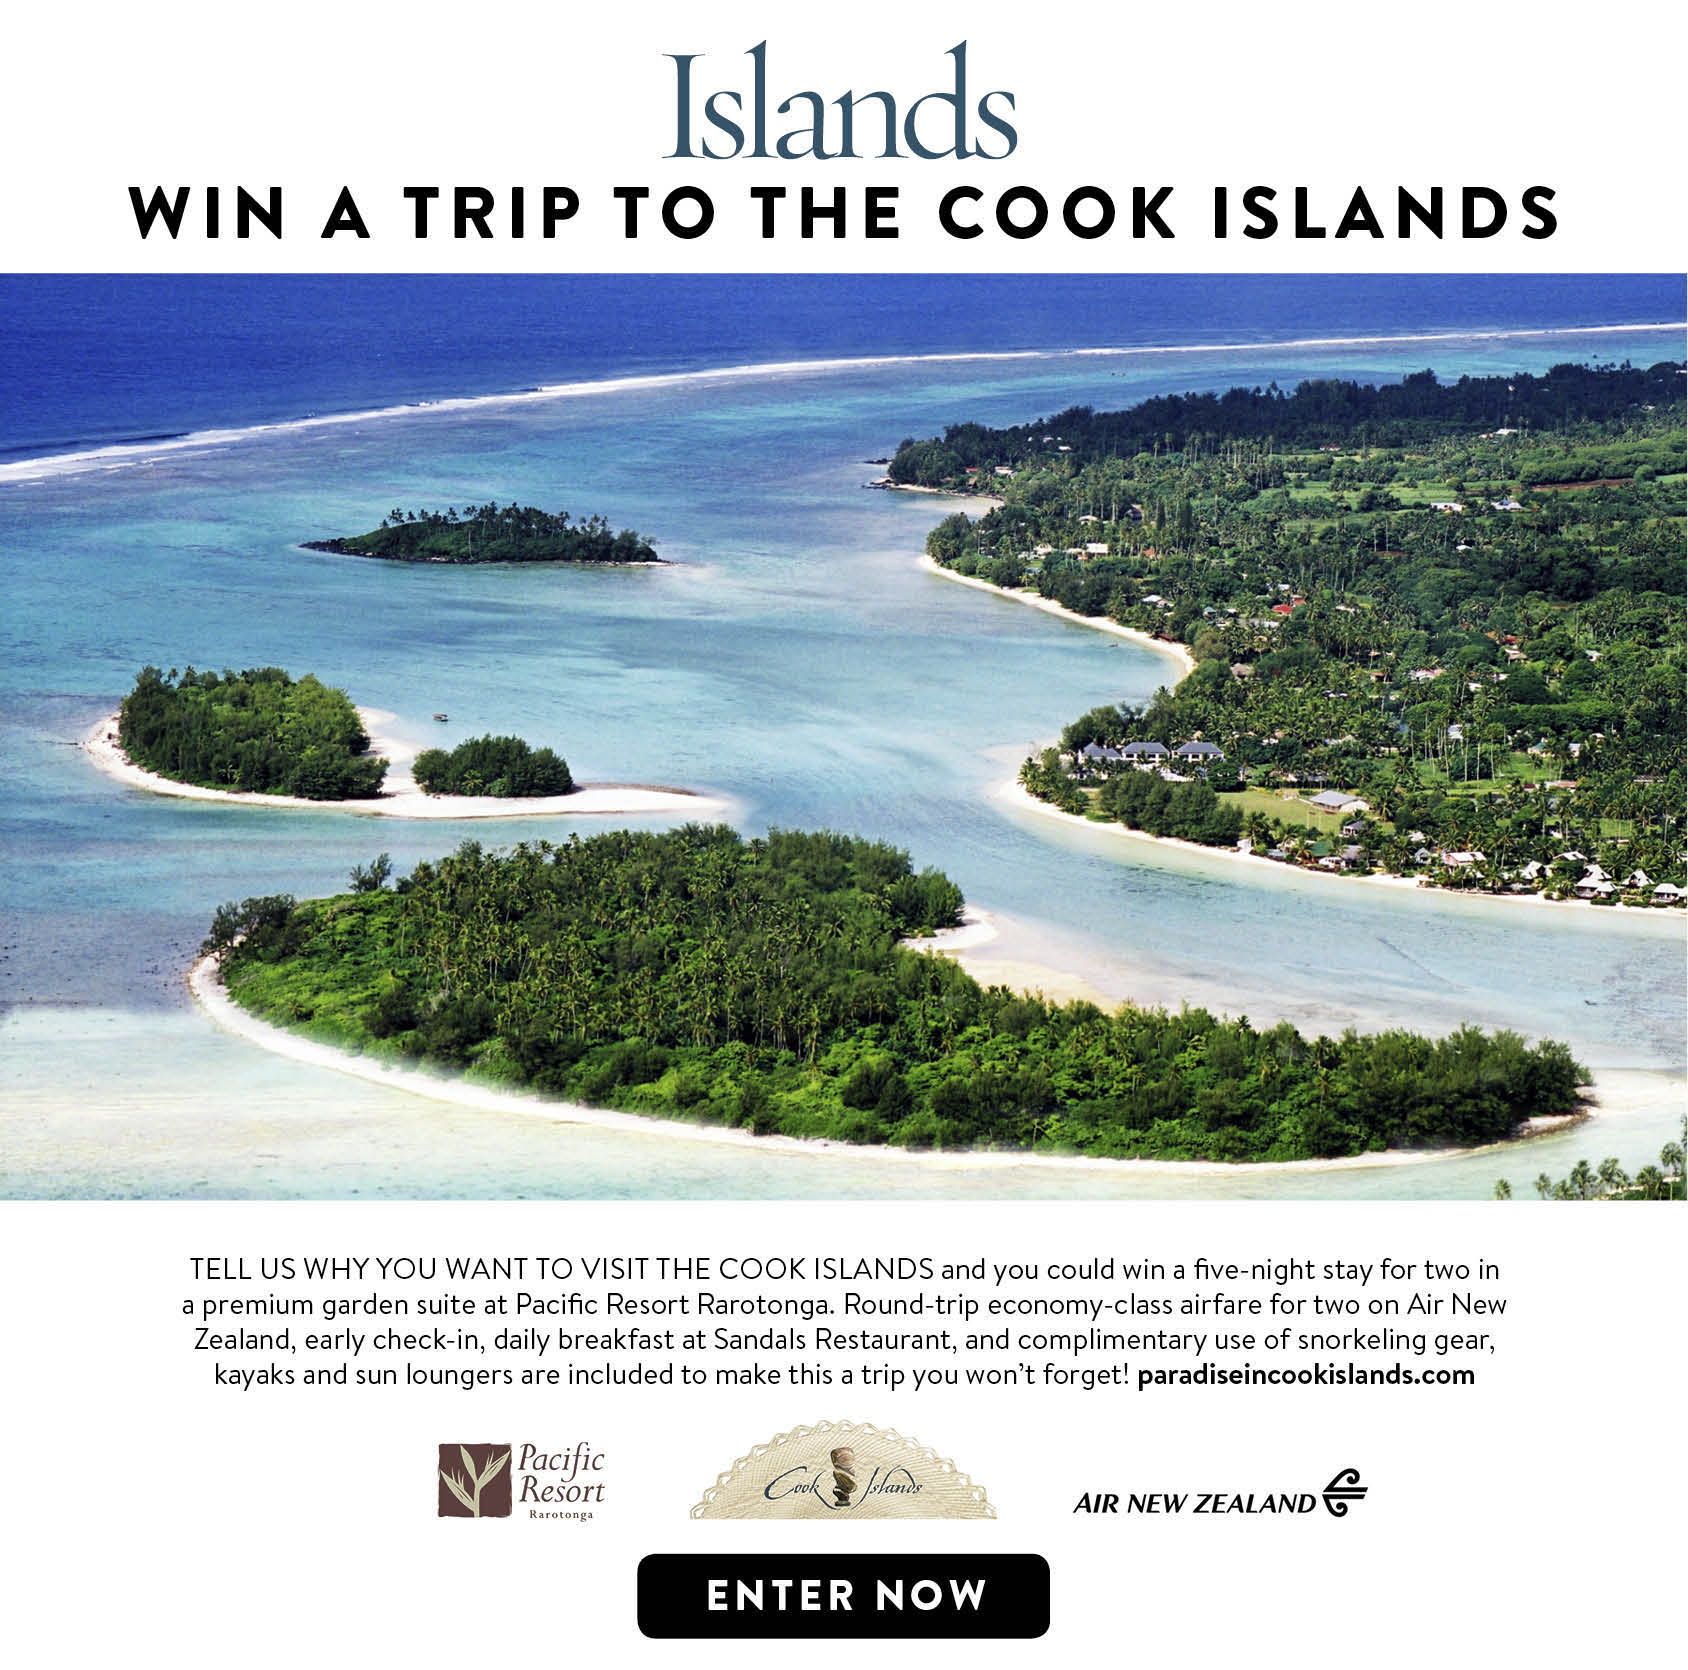 Win a Trip to the Cook Islands